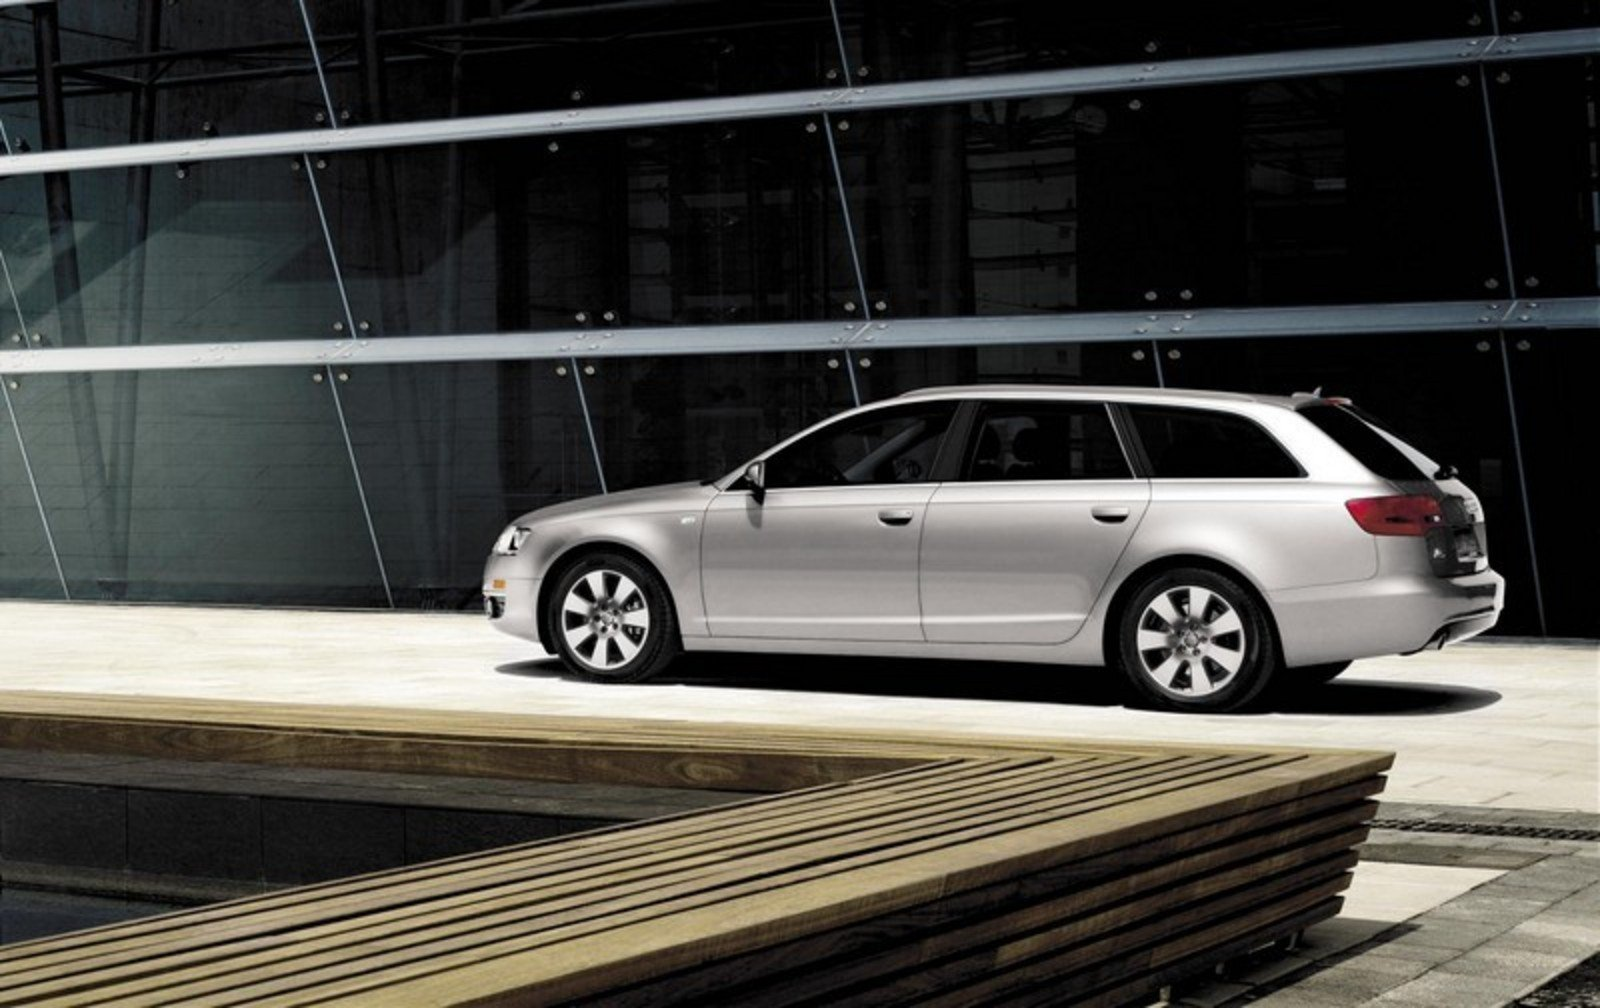 2006 audi a6 wagon picture 45298 car review top speed. Black Bedroom Furniture Sets. Home Design Ideas